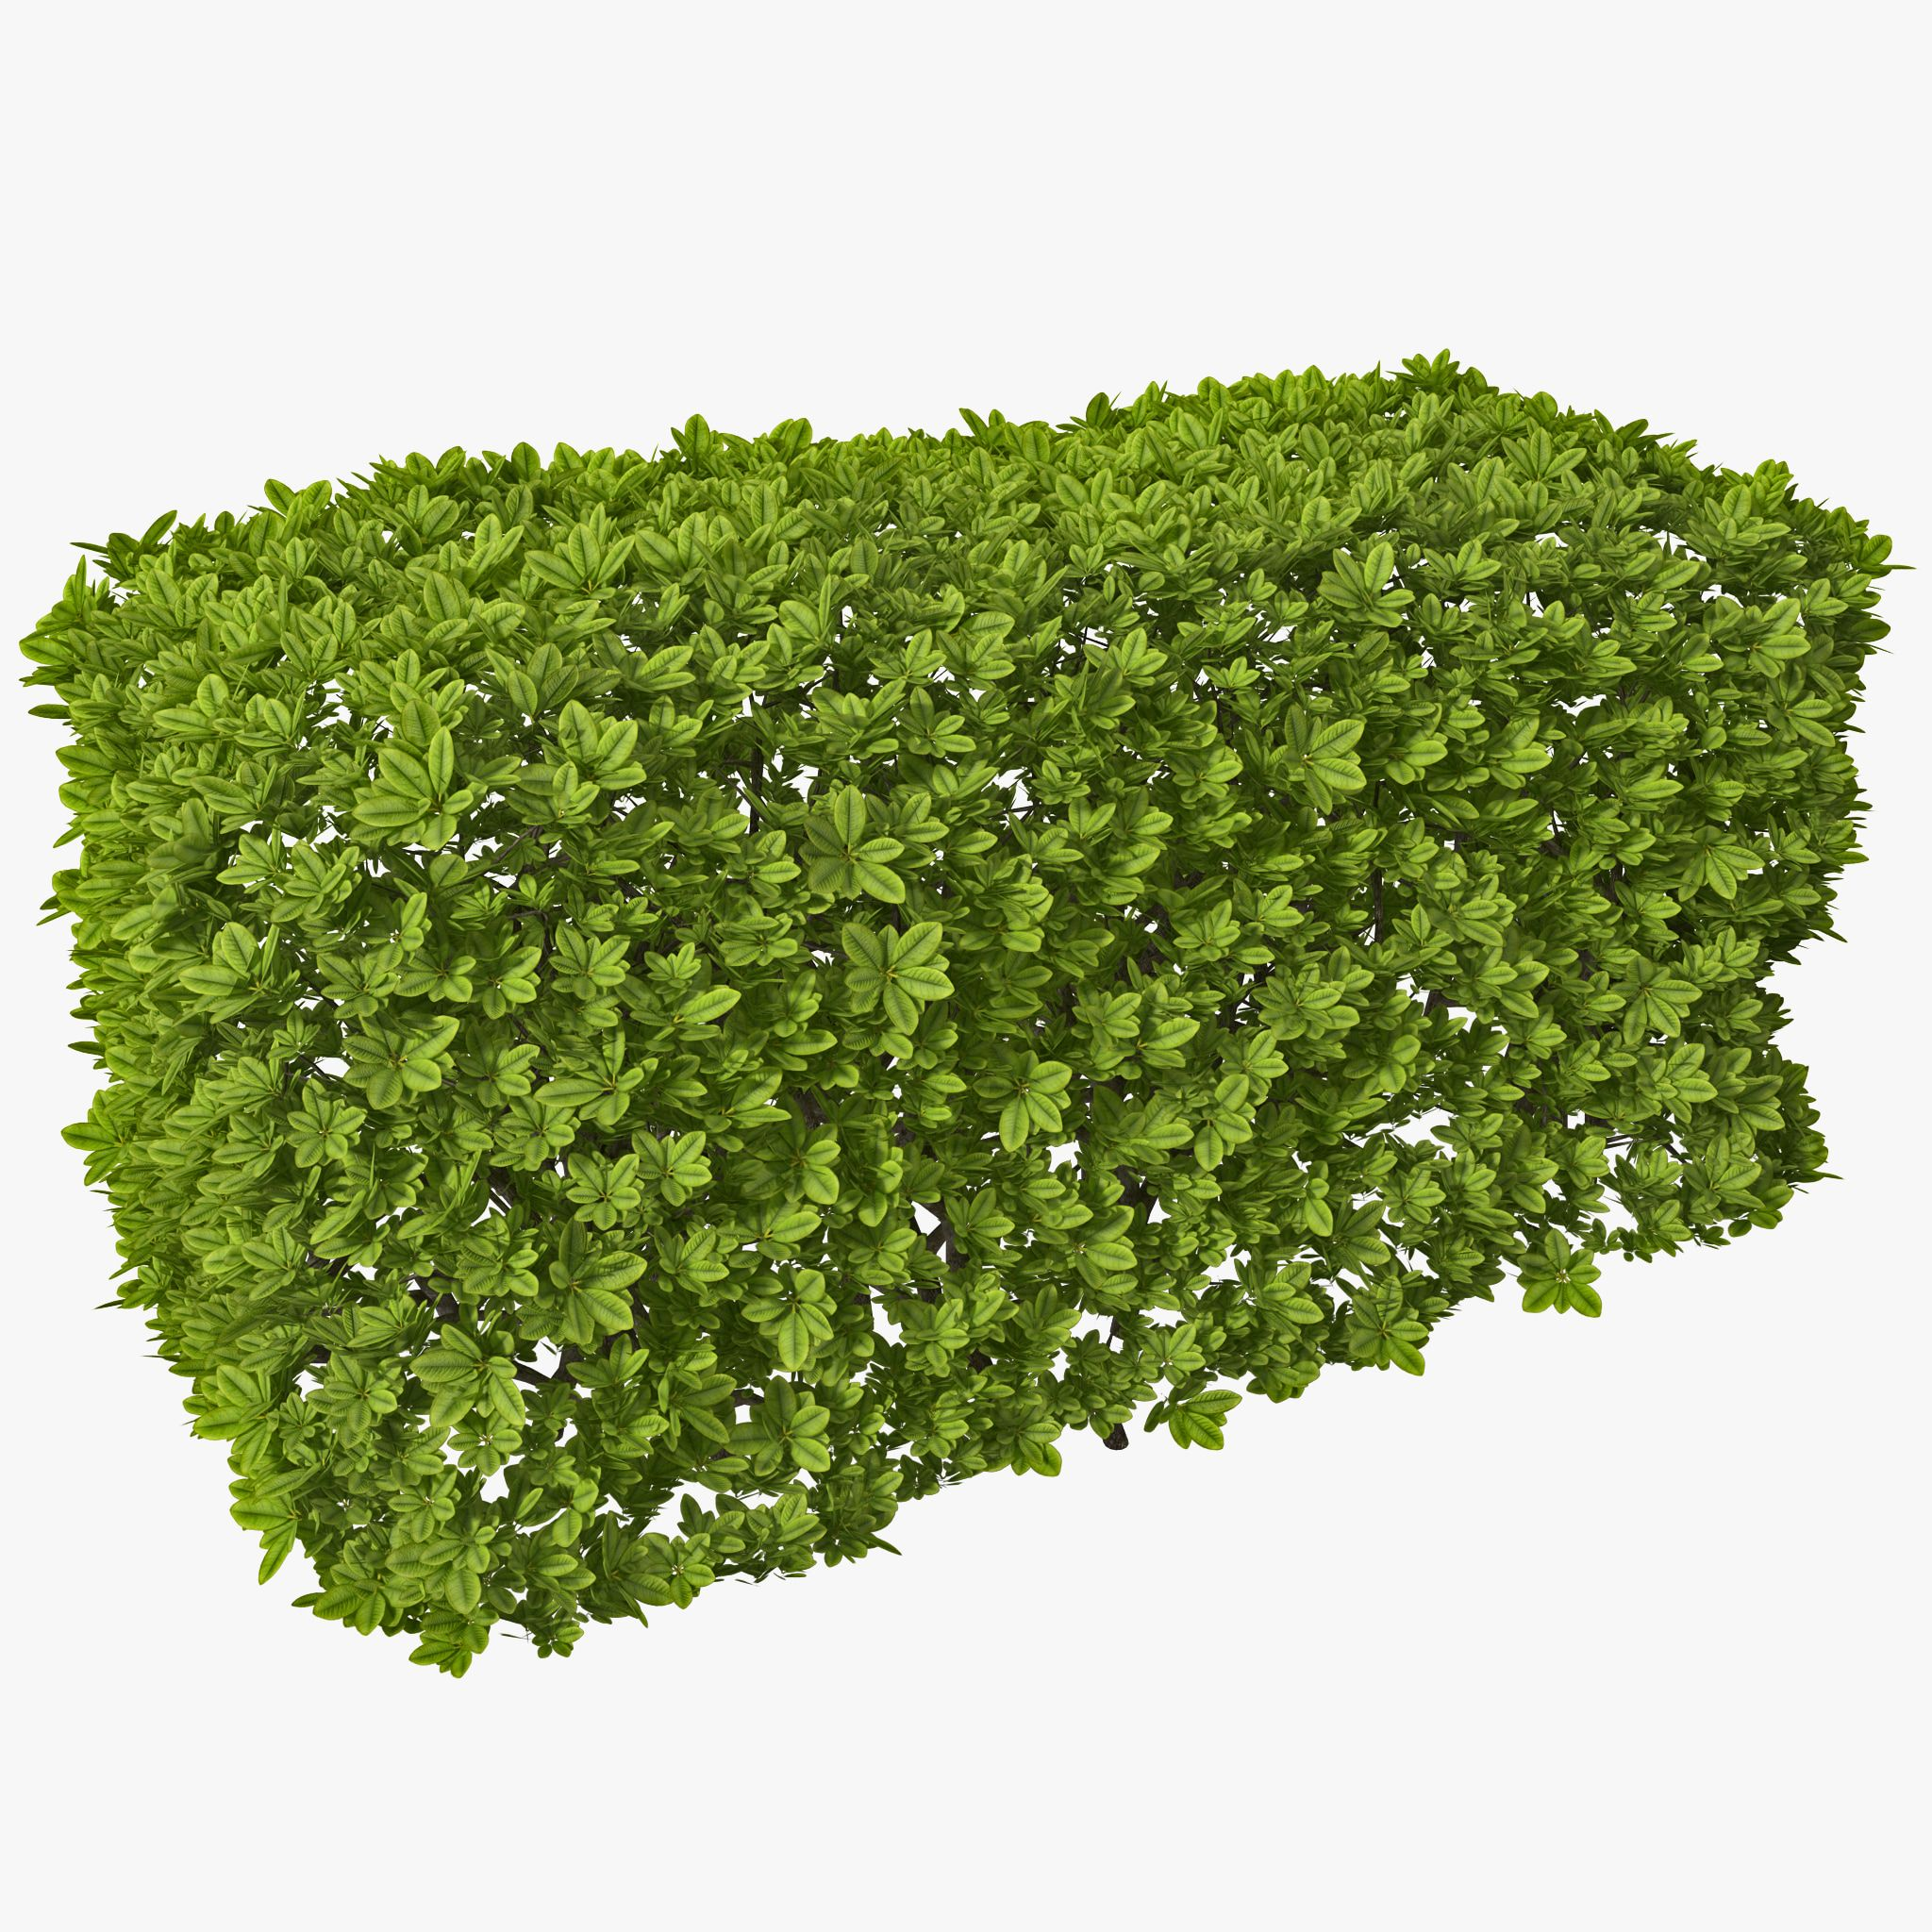 3d Rectangular Box Hedge Model 3d Model Tree Textures Trees To Plant Plant Images